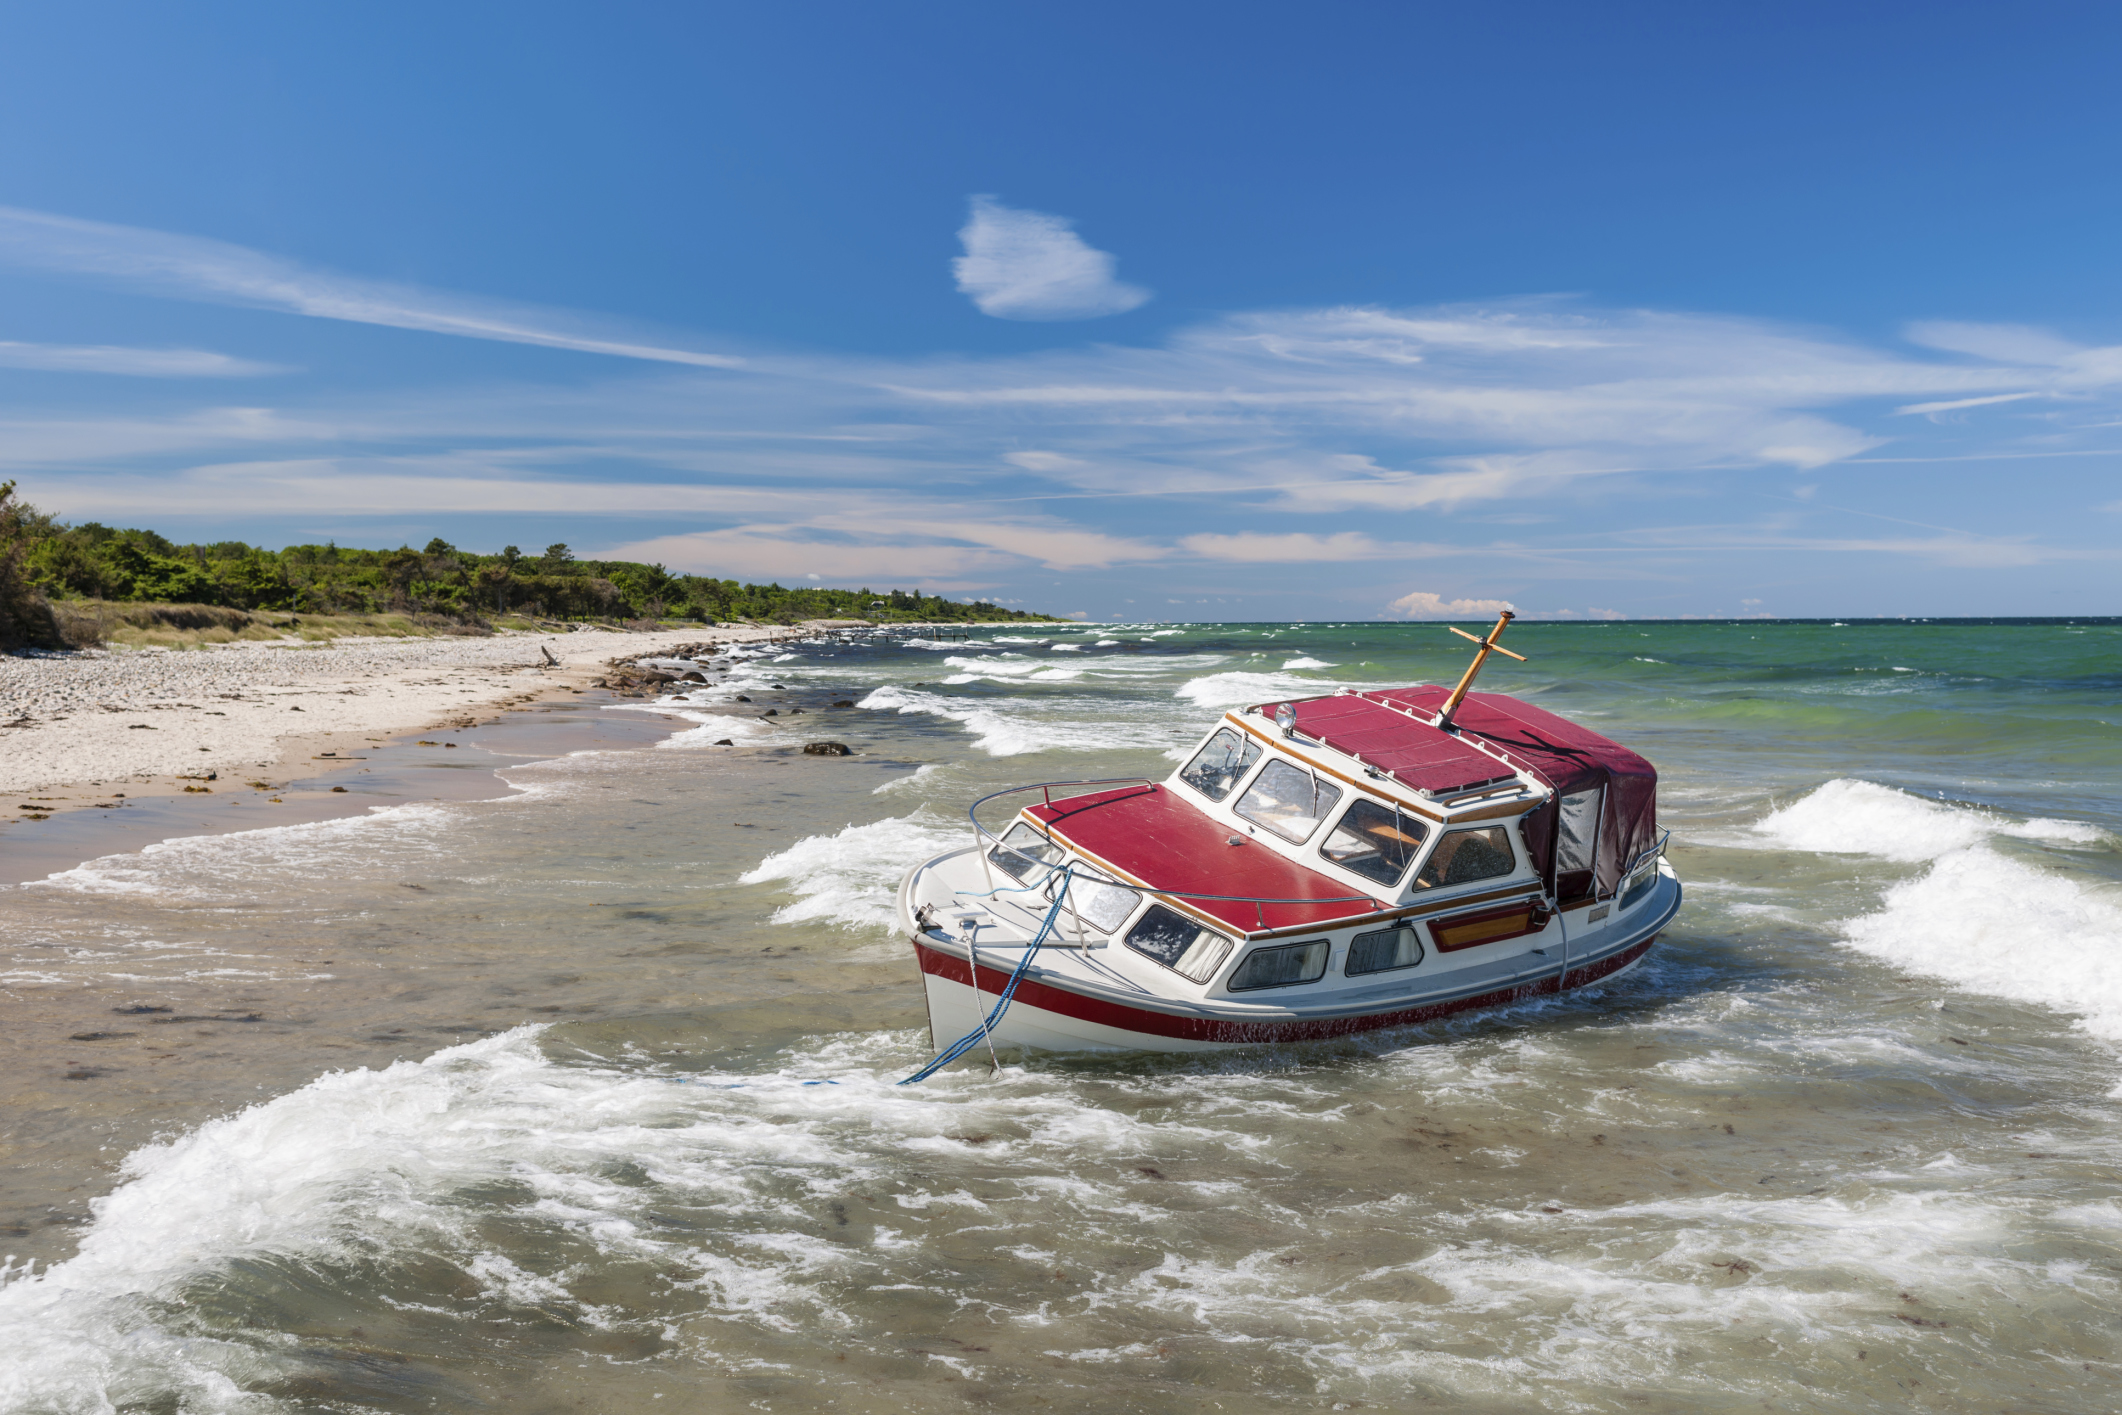 Florida Abandoned Boat Salvage Laws